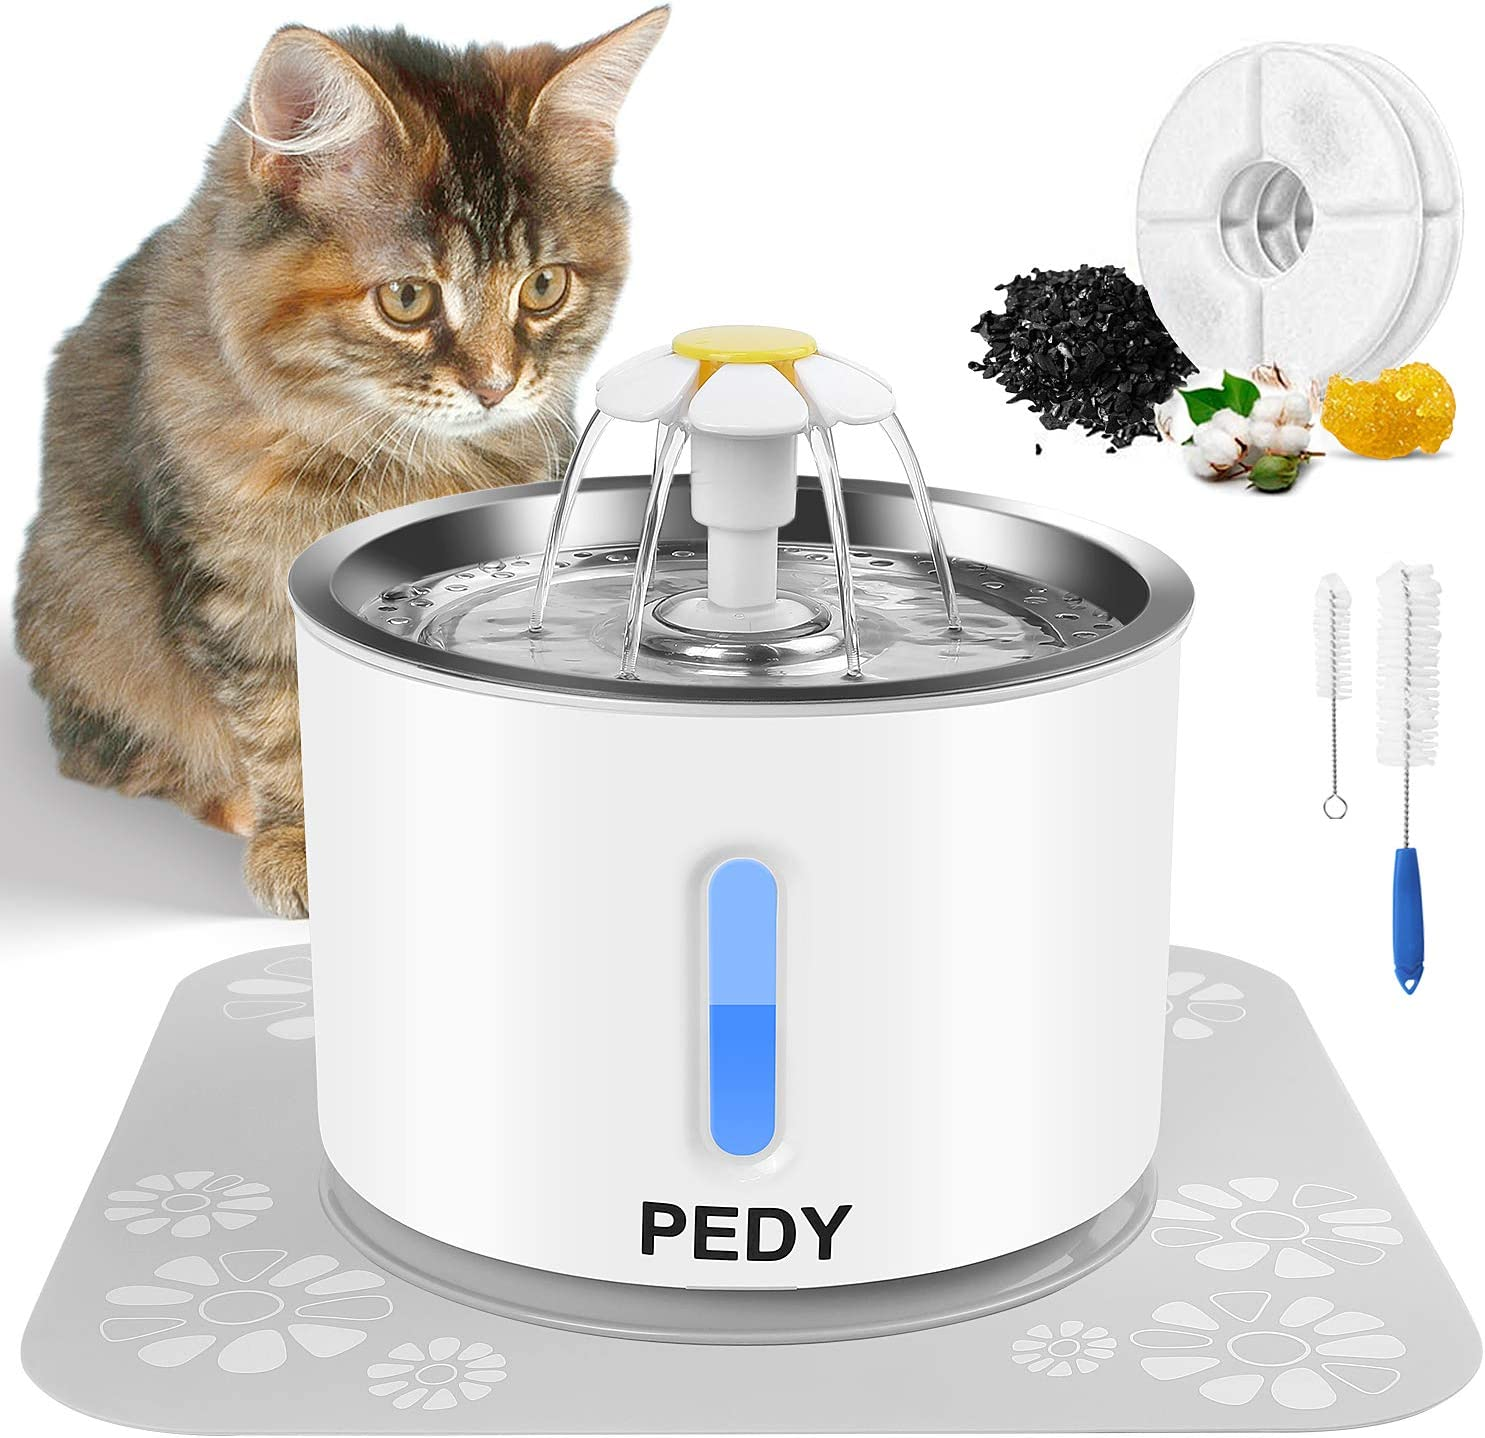 Pedy Cat Water Fountain, Automatic Pet Fountain with LED Light Switch & Water Level Window, 81oz/2.4L